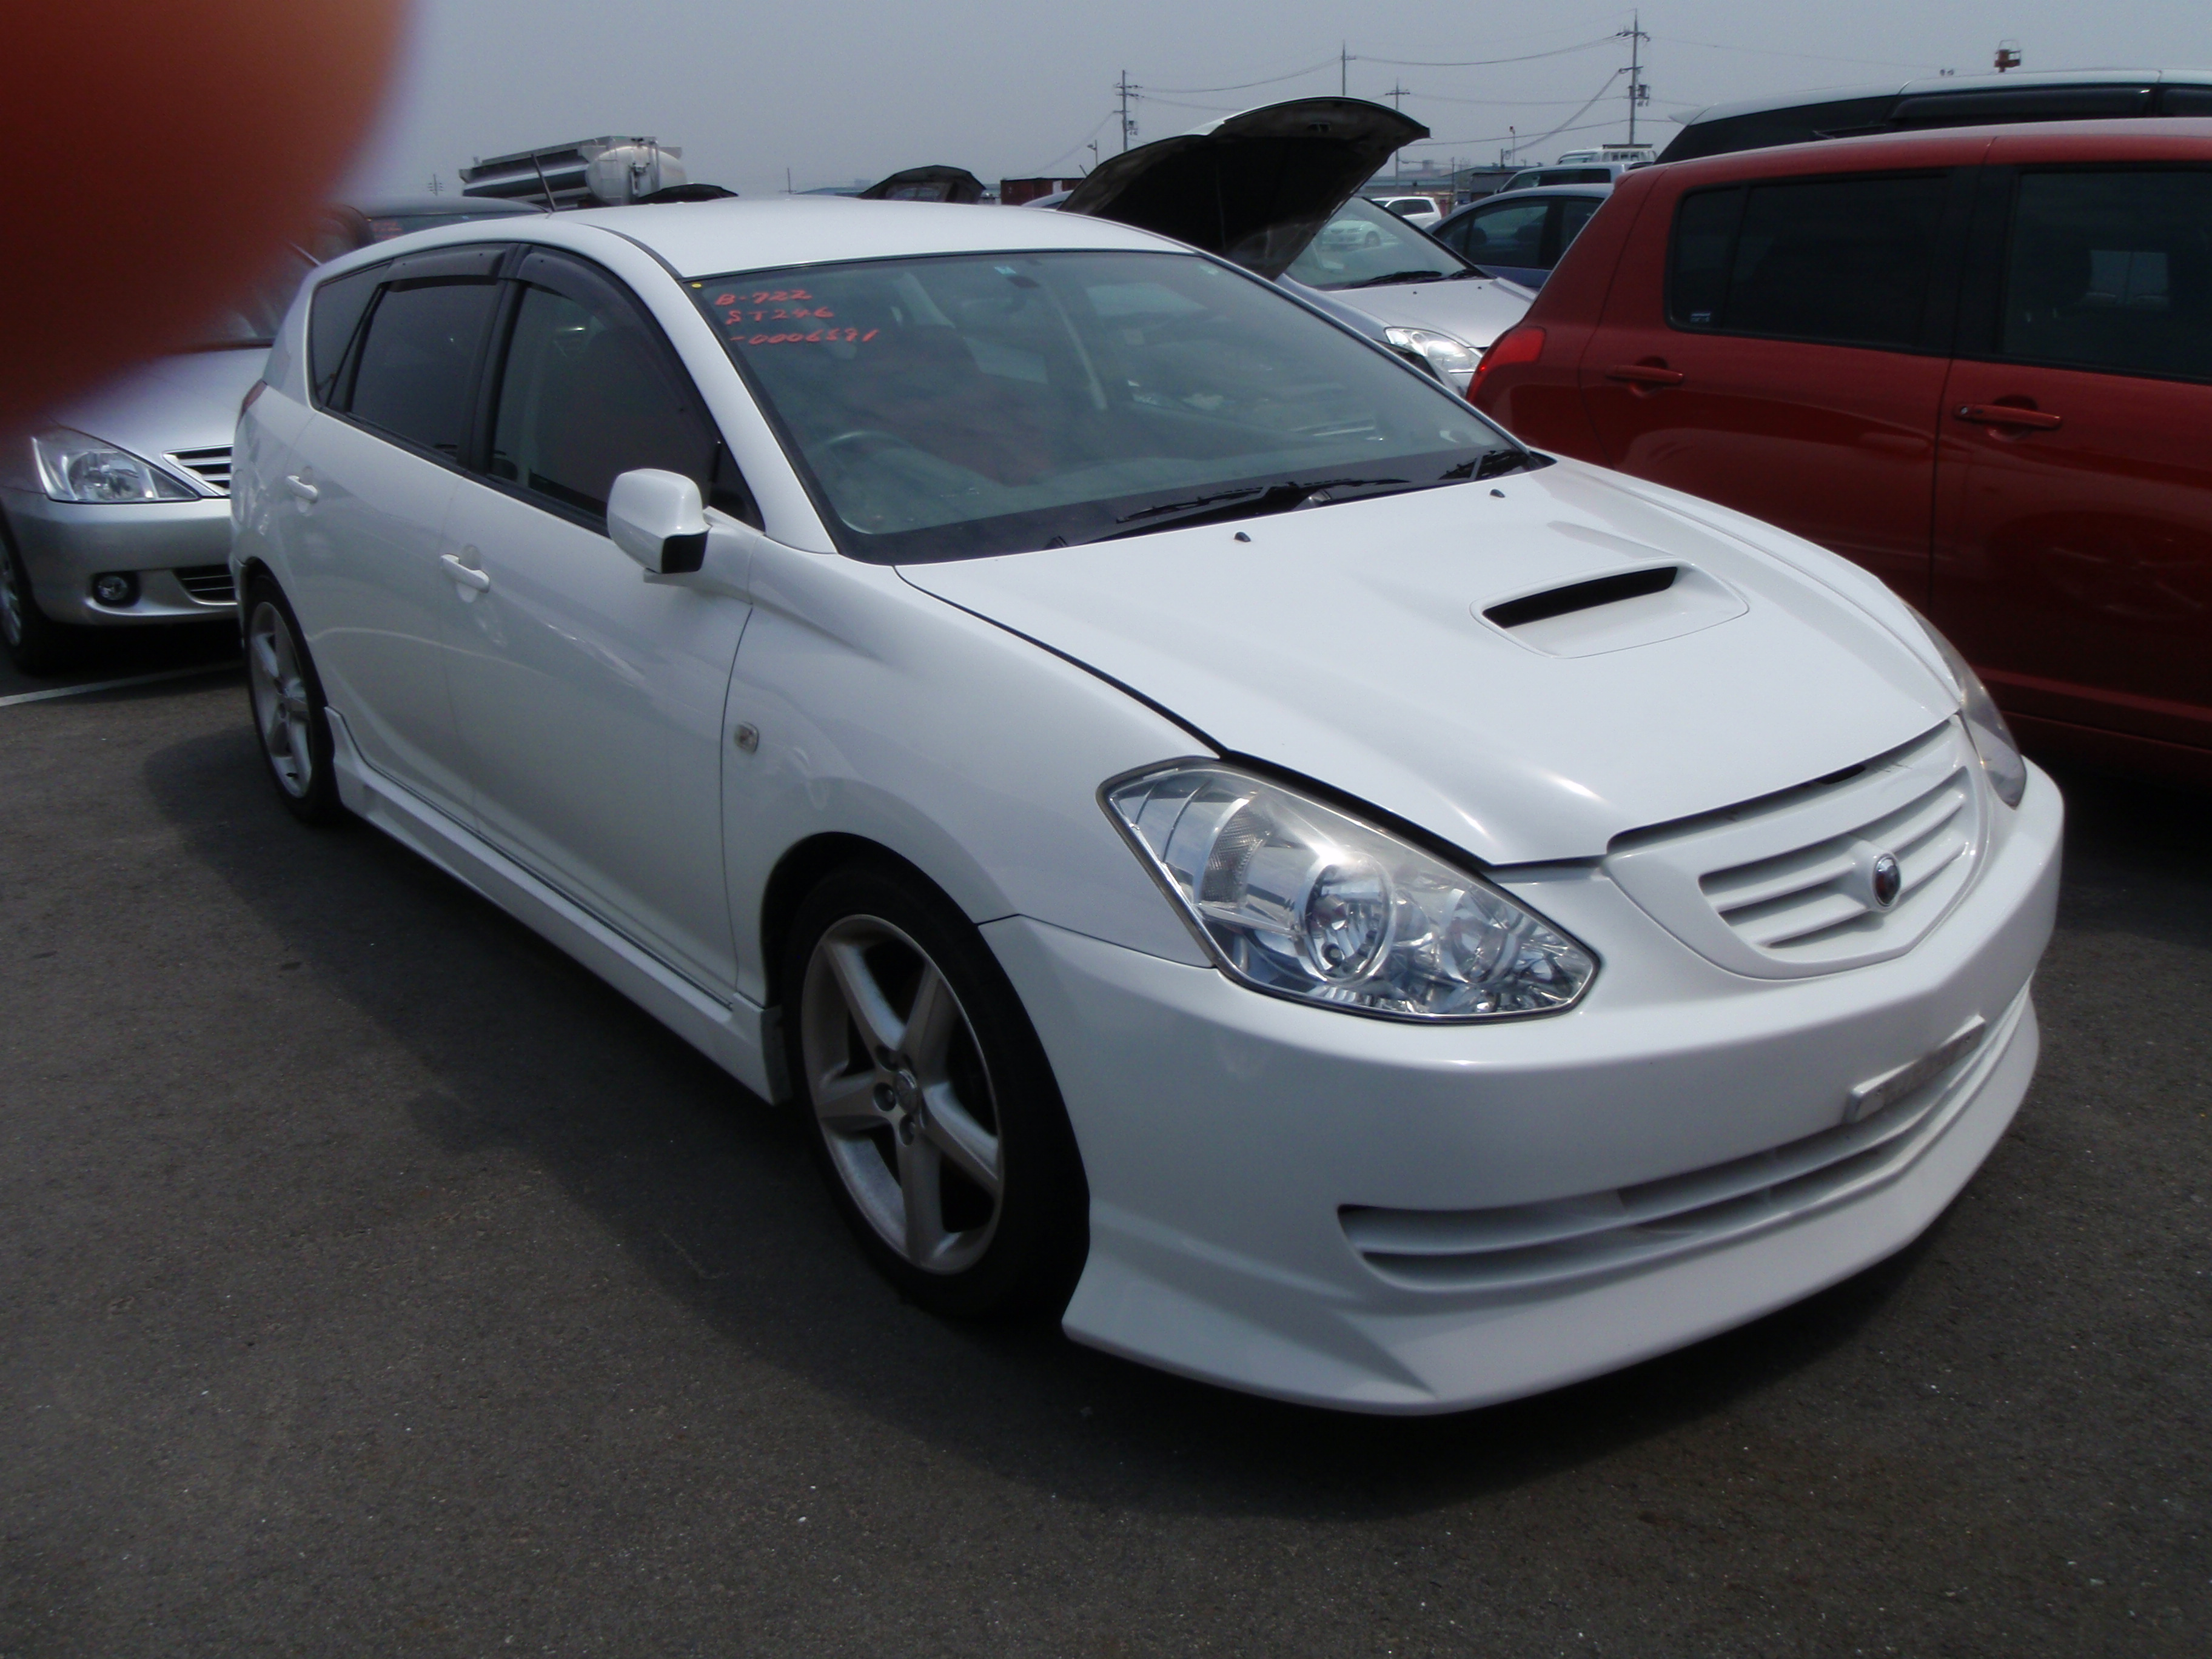 2003 Toyota Caldina GT-FOUR 2L 4WD turbo front